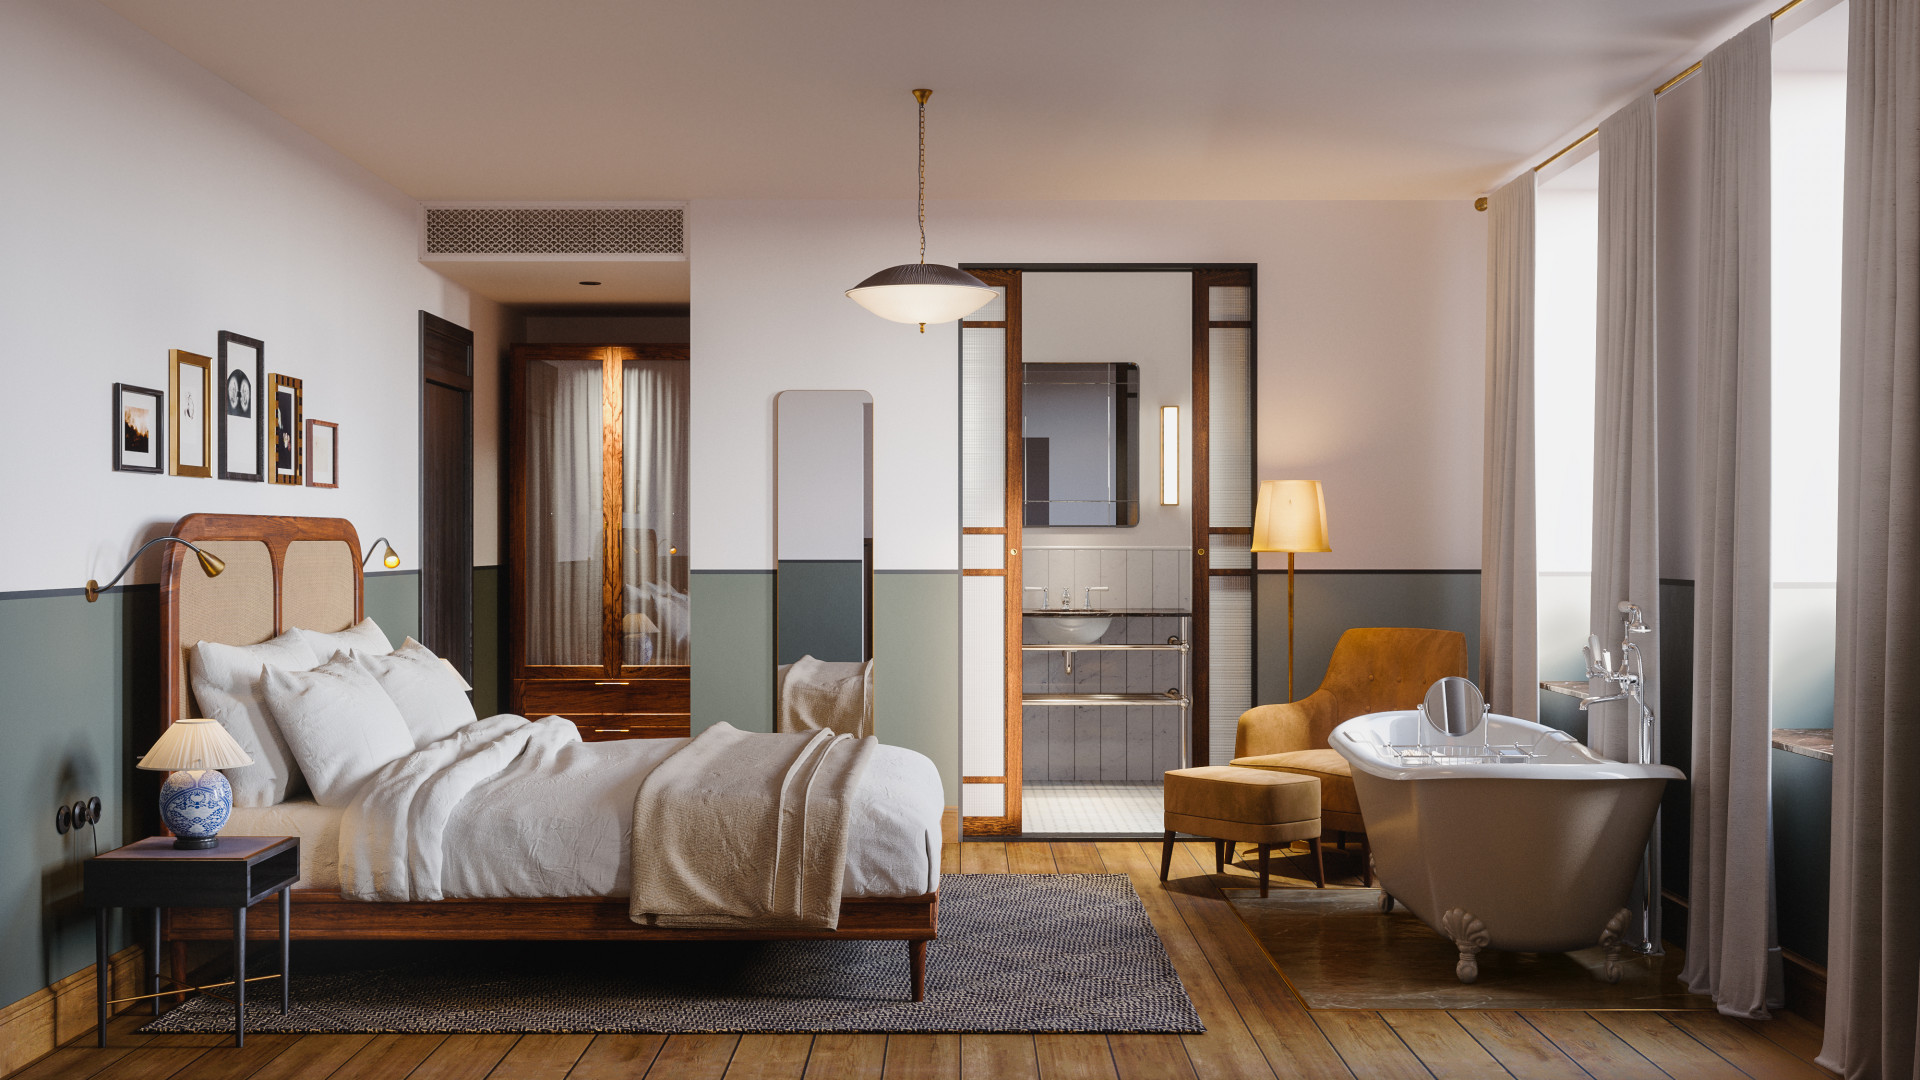 Interior of a double room at the new Sanders Hotel in Copenhagen